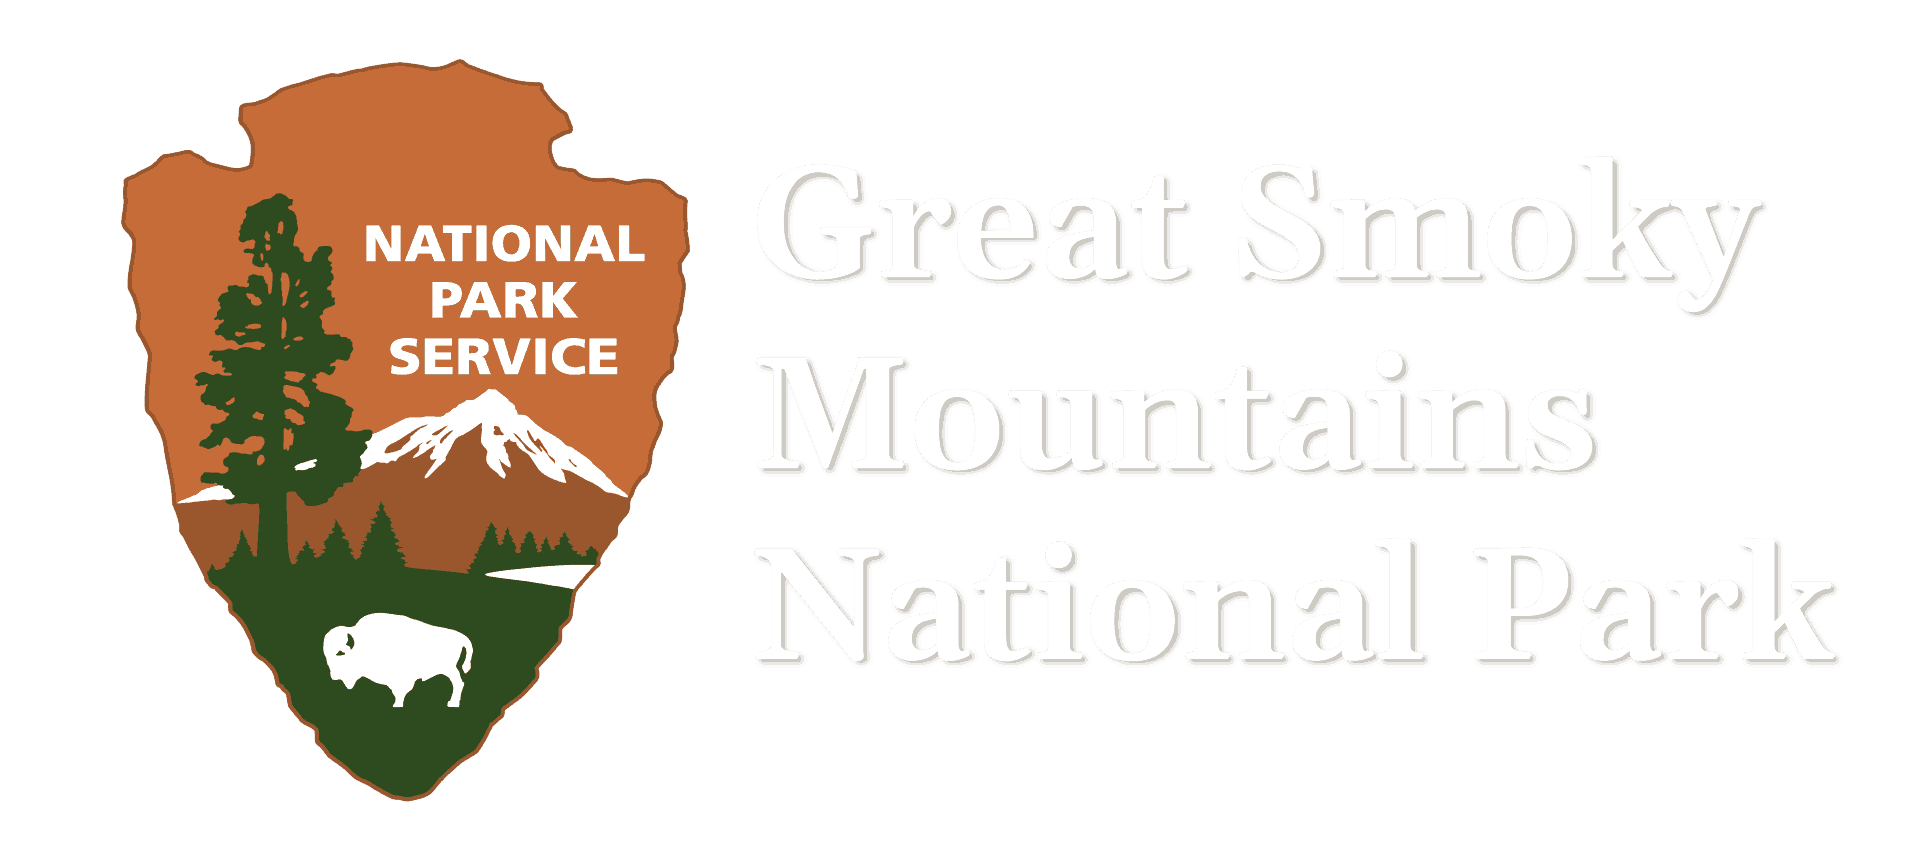 Great Smoky Mountains National Park logo